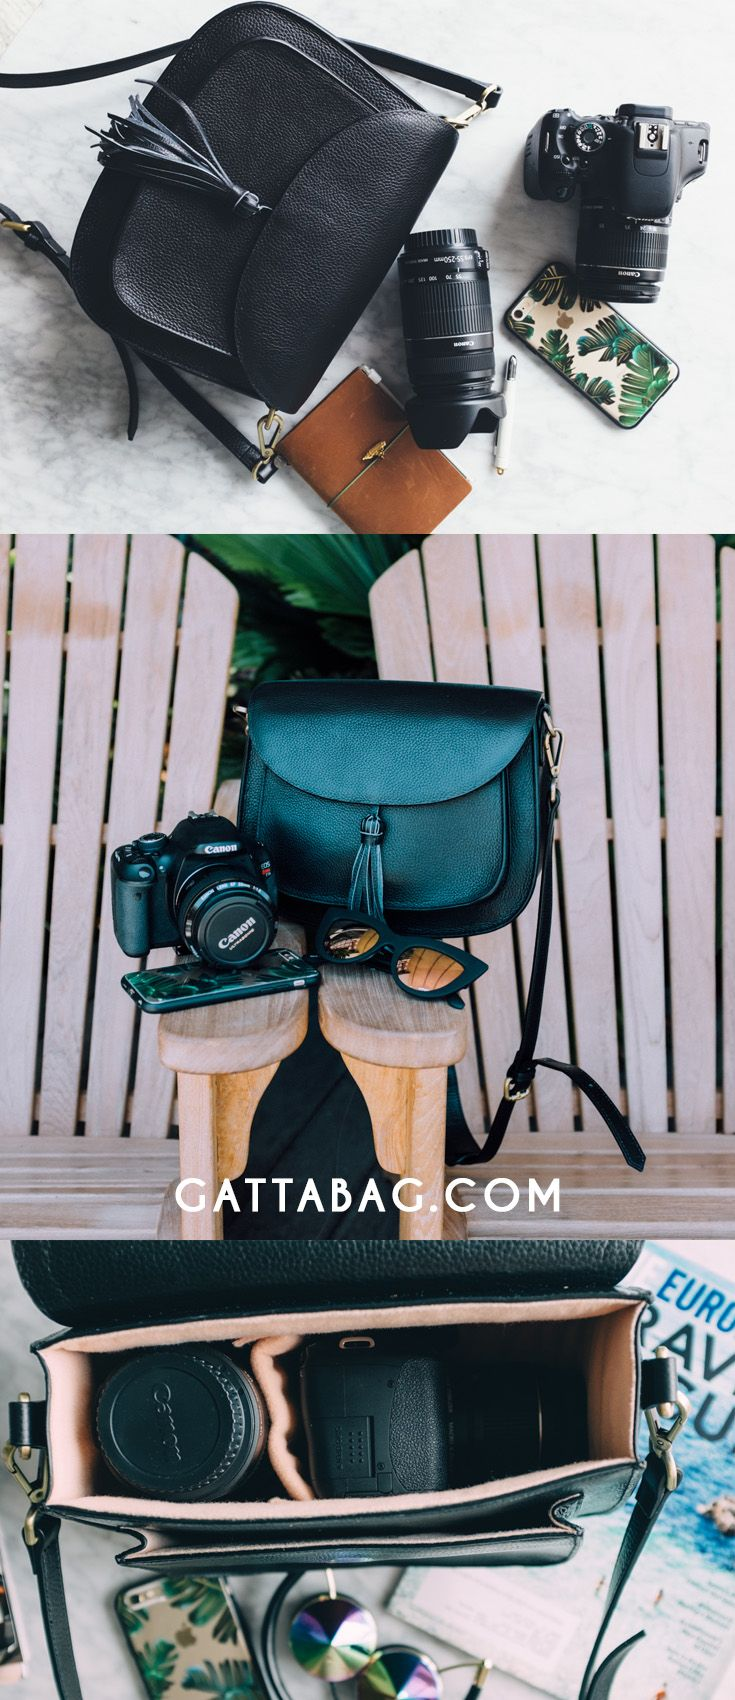 GATTA - Chic Camera bags - gattabag.com